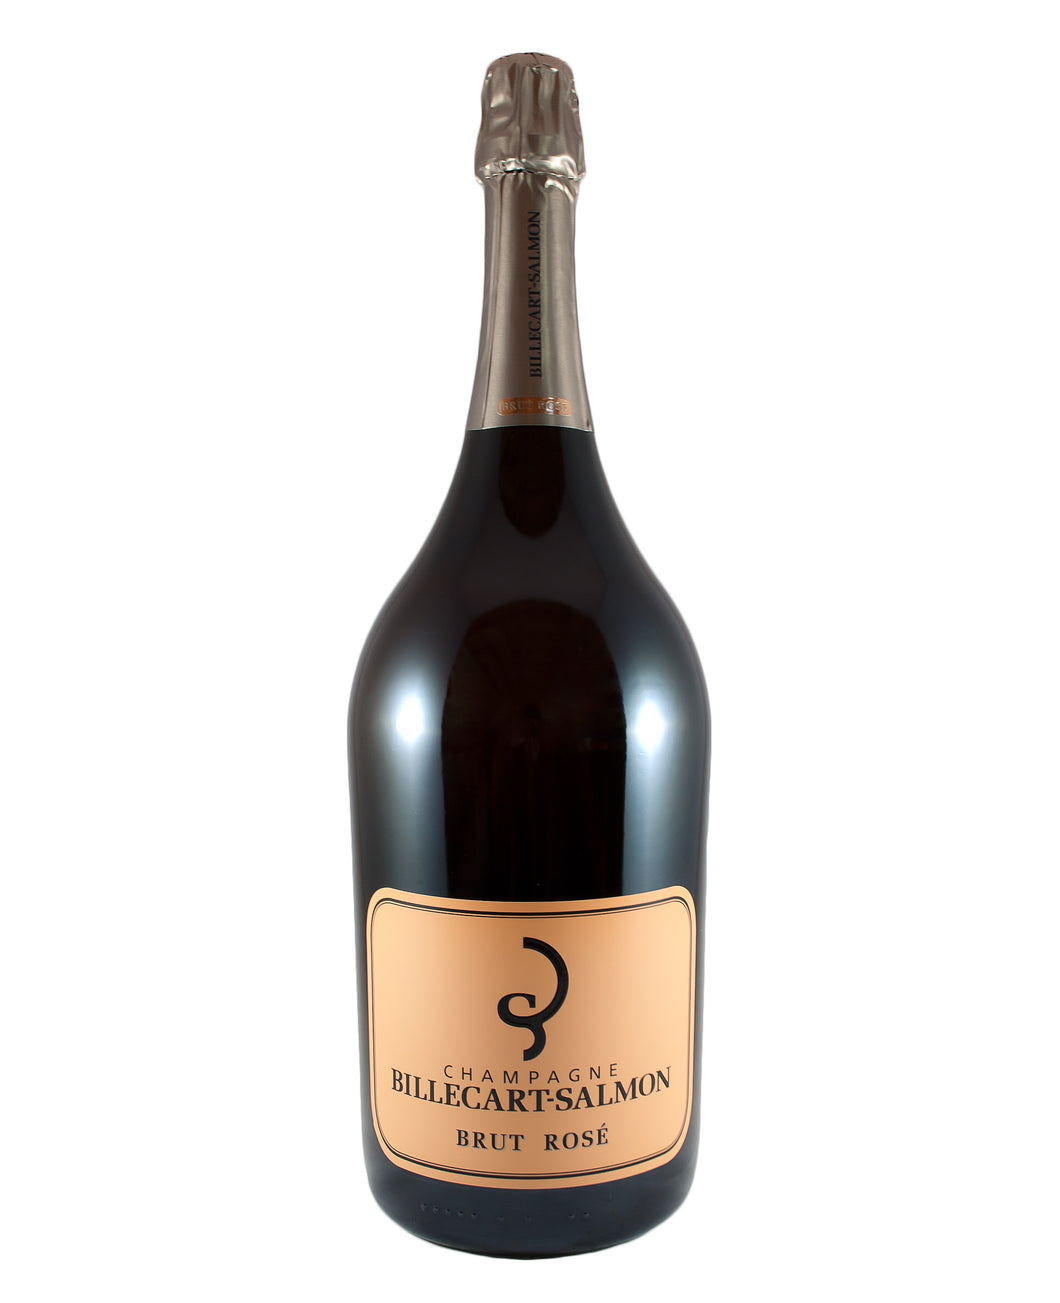 NV Billecart-Salmon Brut Rose 3 LITER (Champagne, FR)